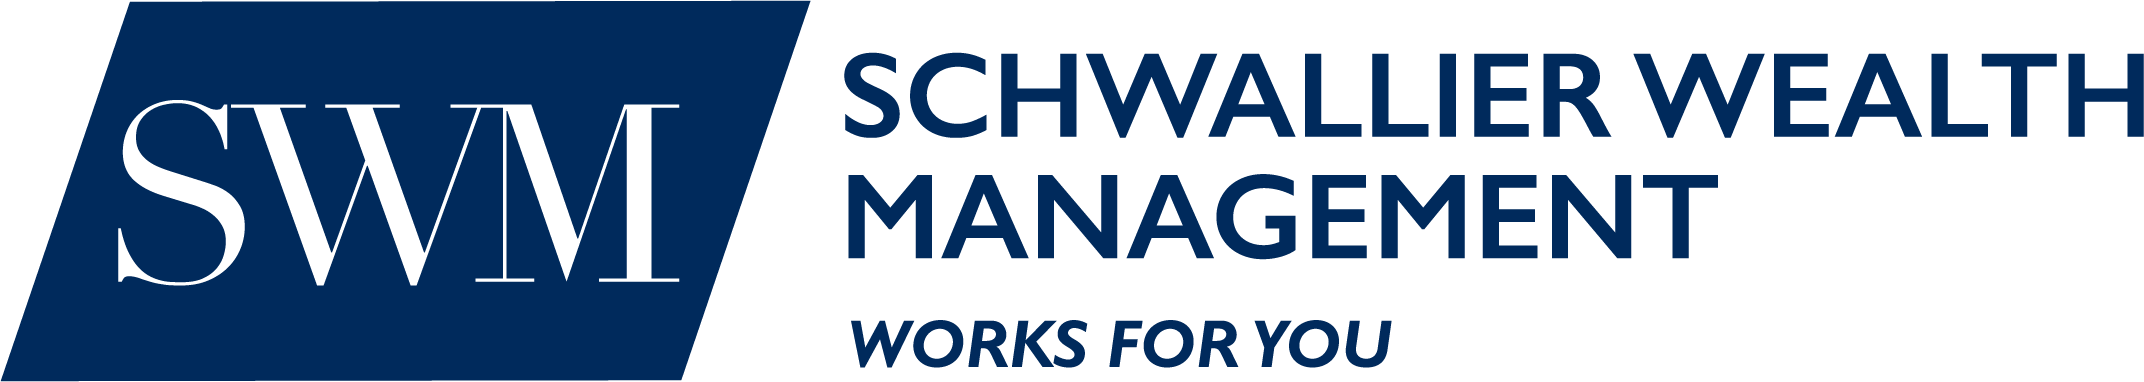 Schwallier Wealth Management LLC  - Ada, Michigan